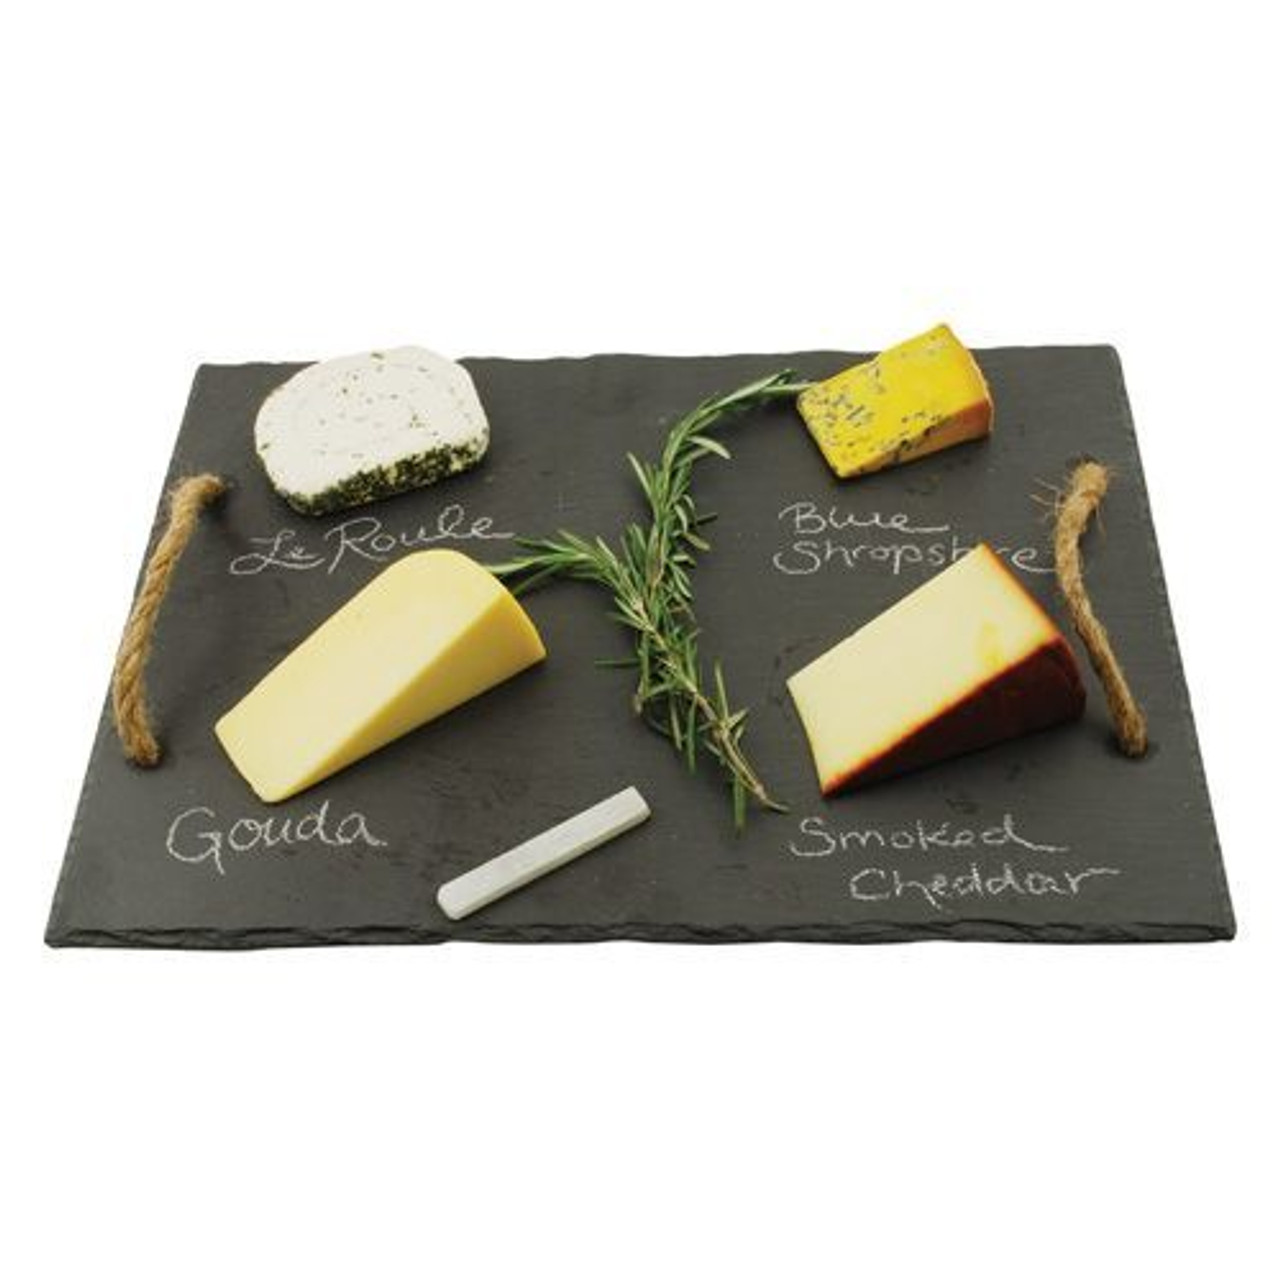 Host a Late Summer Wine and Cheese Tasting Buffet